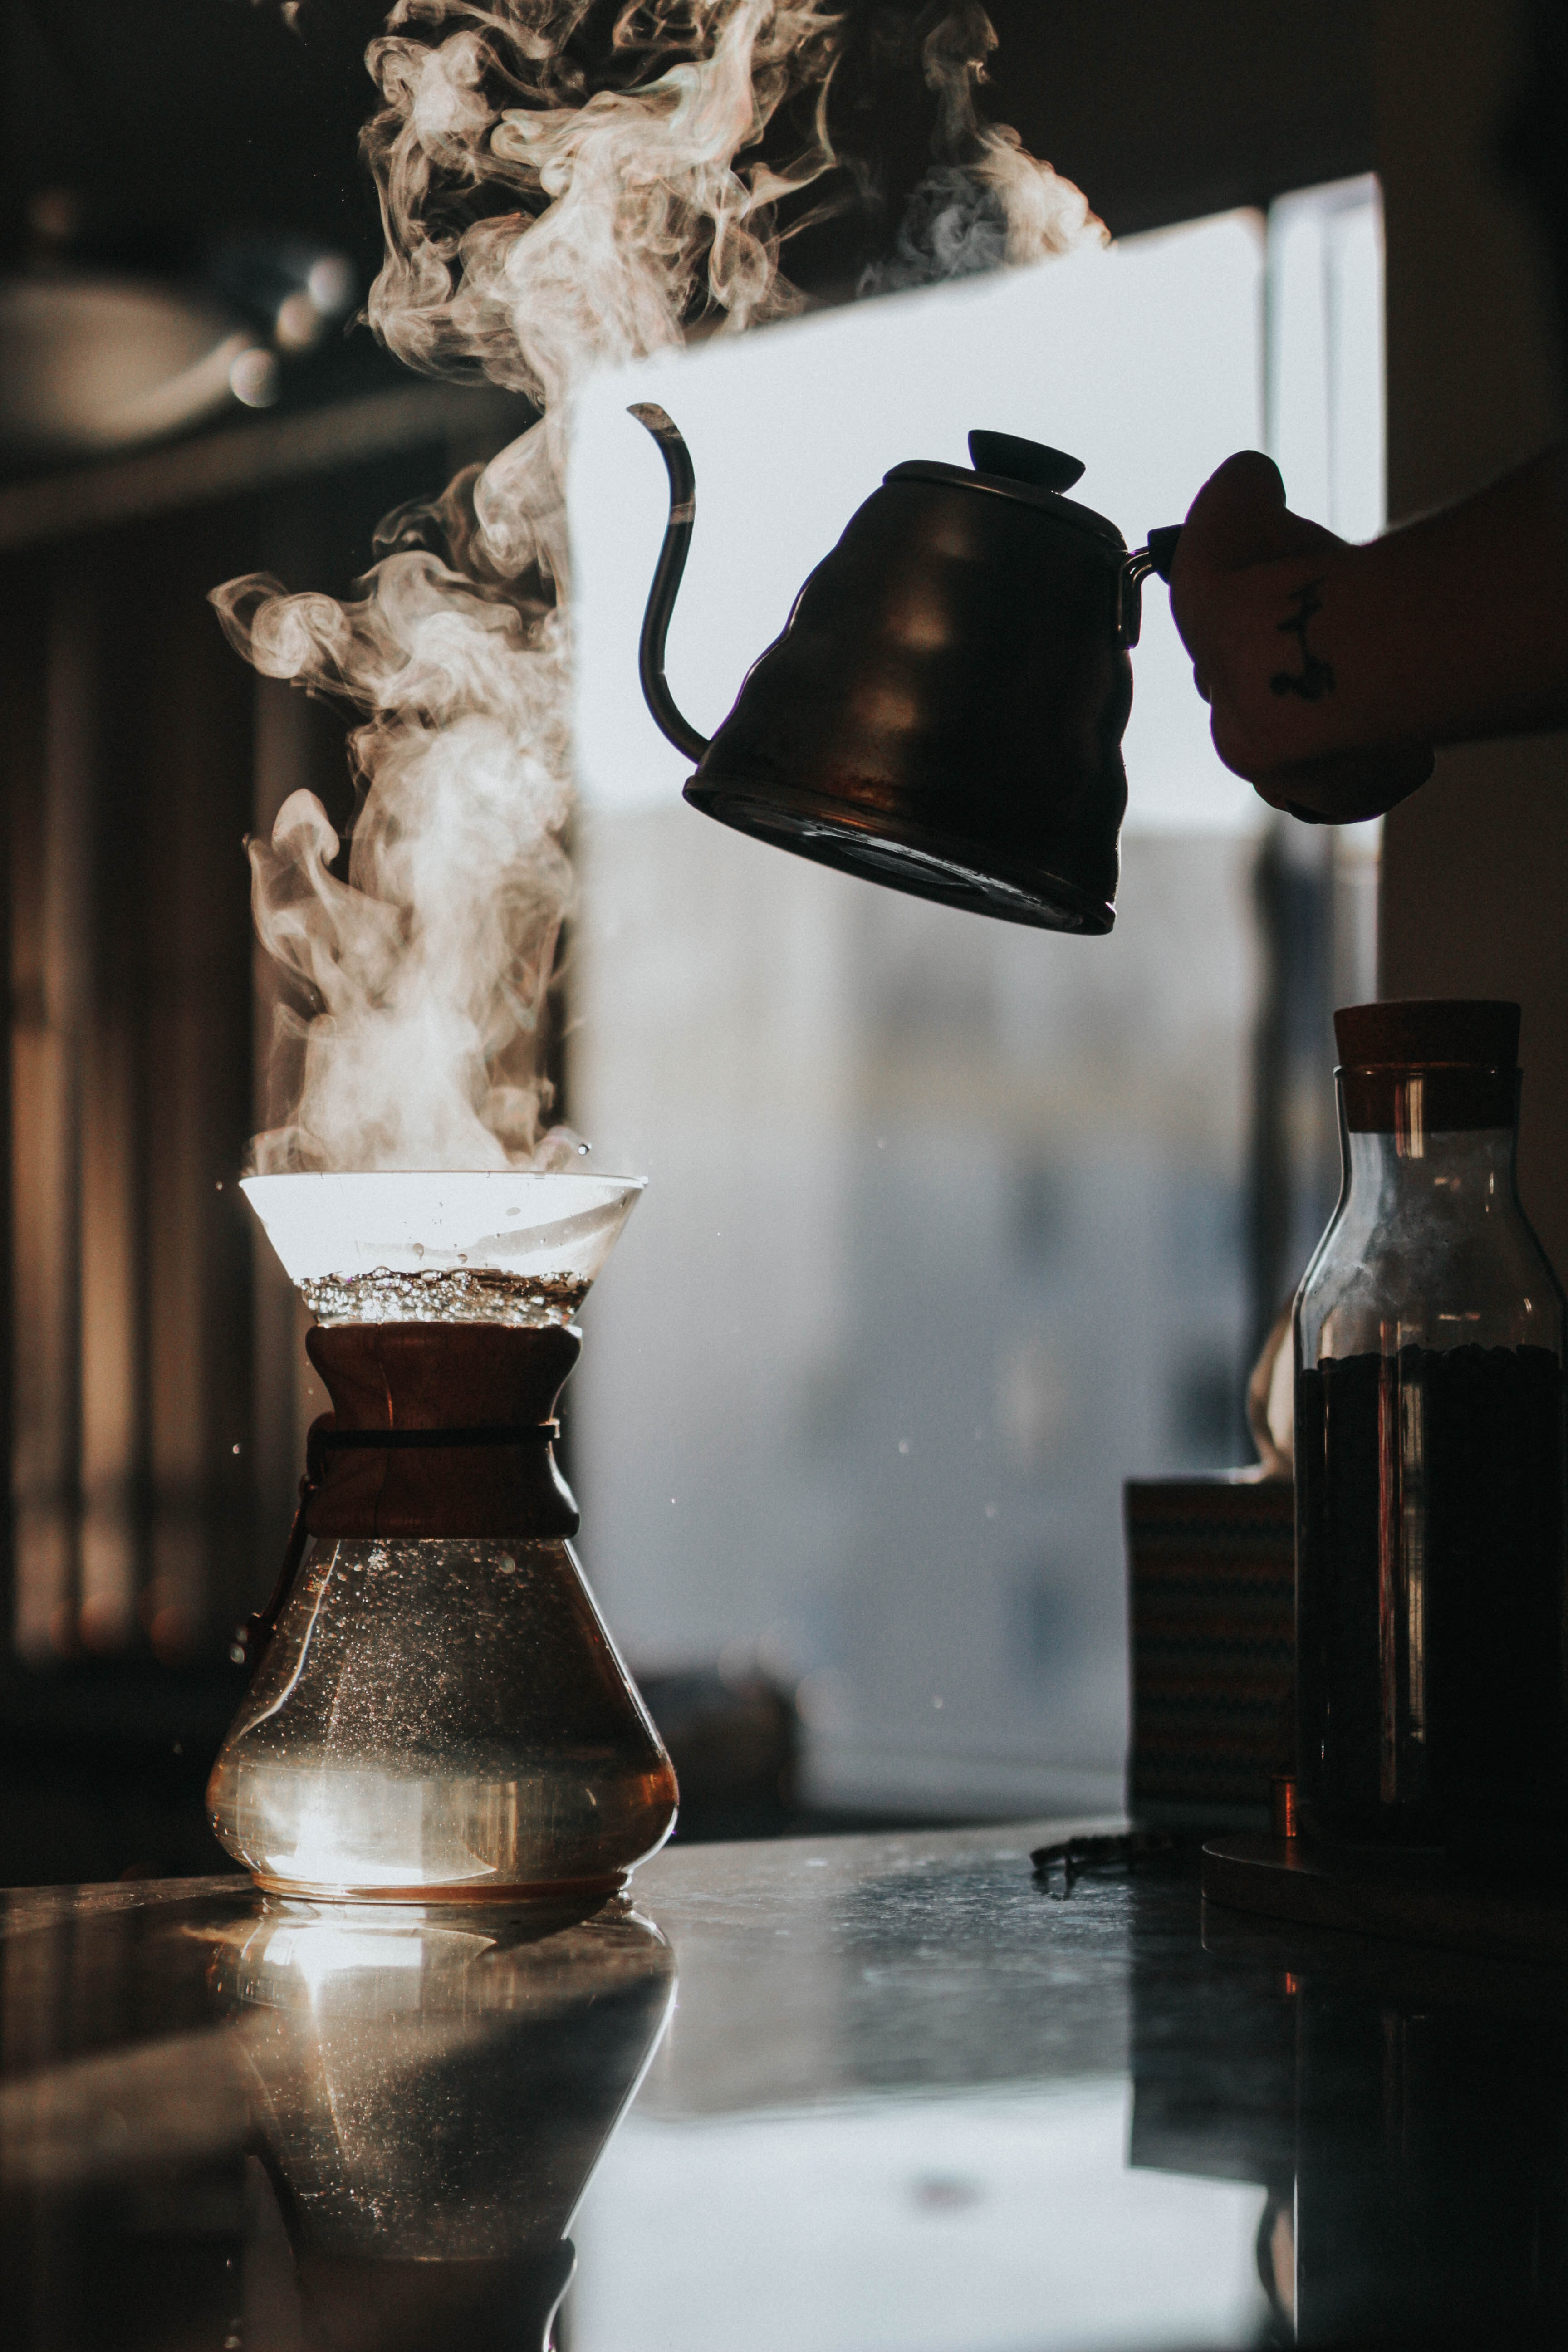 person holding teapot with boiled water